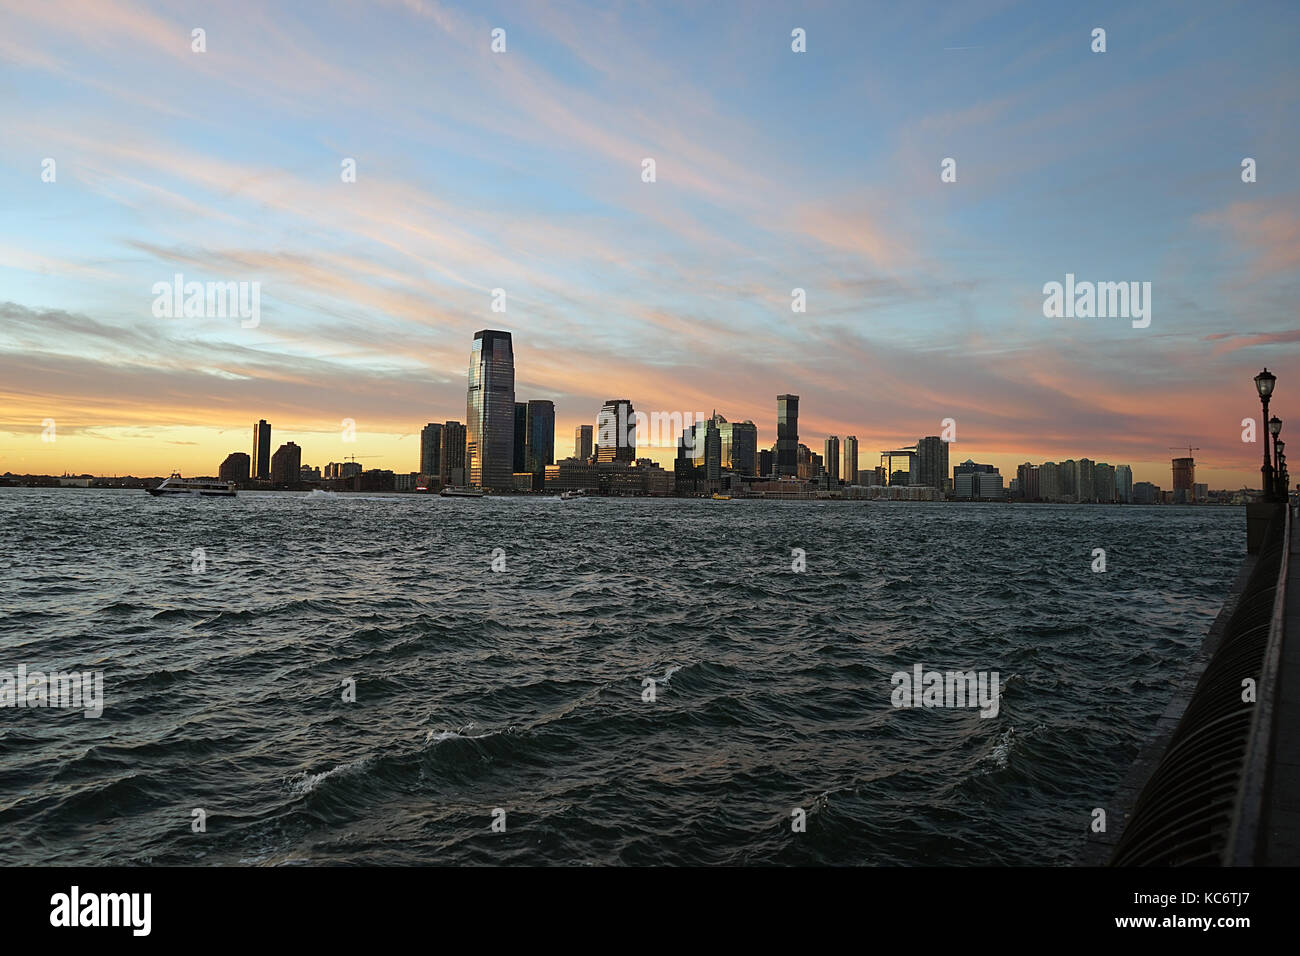 New Jersey from Manhattan New York side with River . - Stock Image